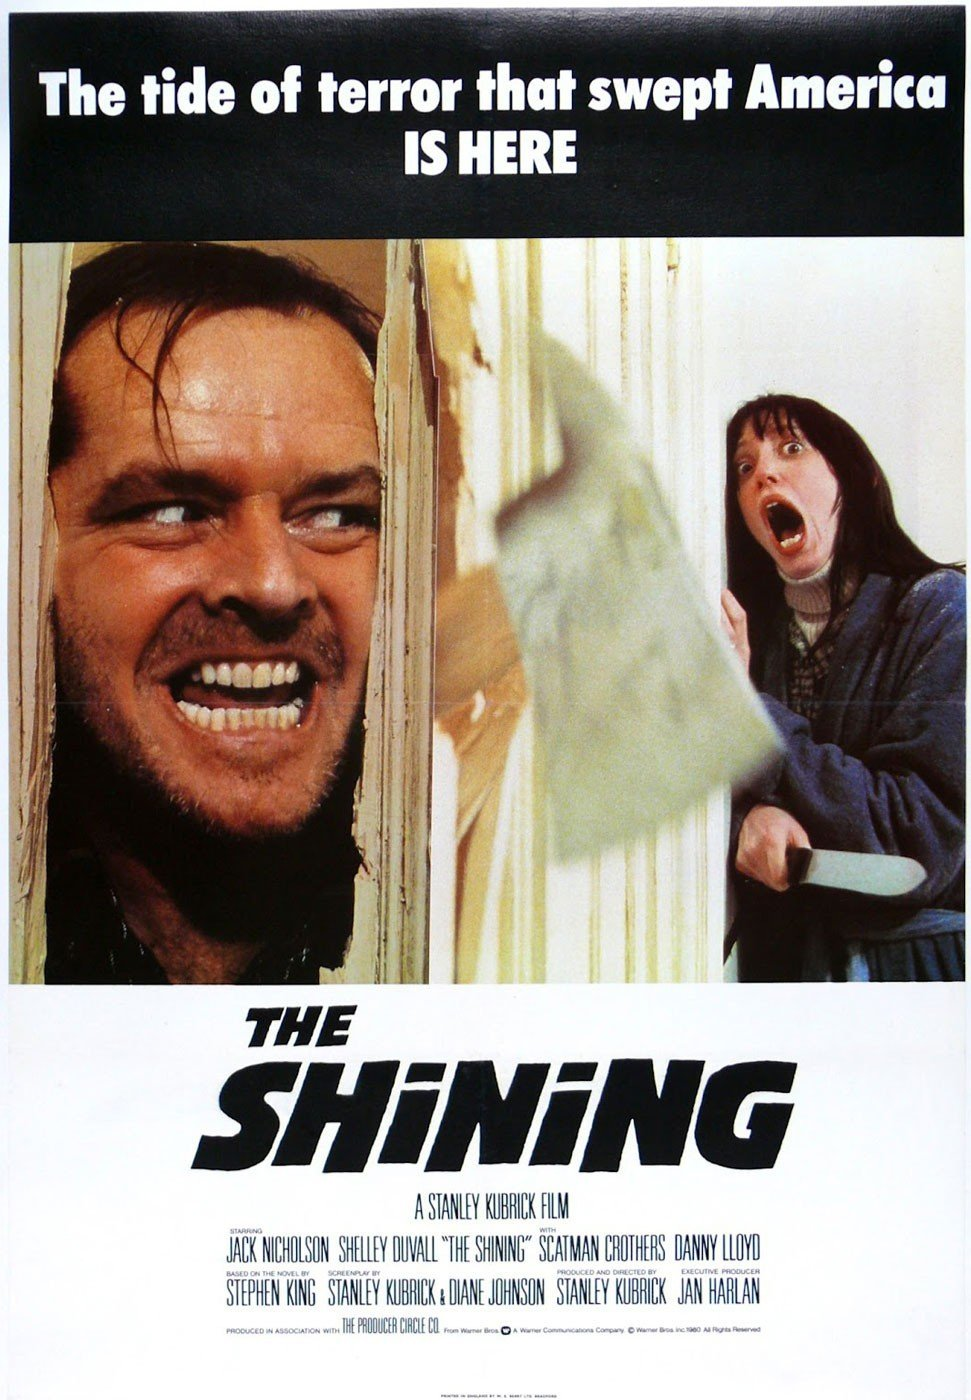 Cartel - The Shining - Stanley Kubrick (1980)